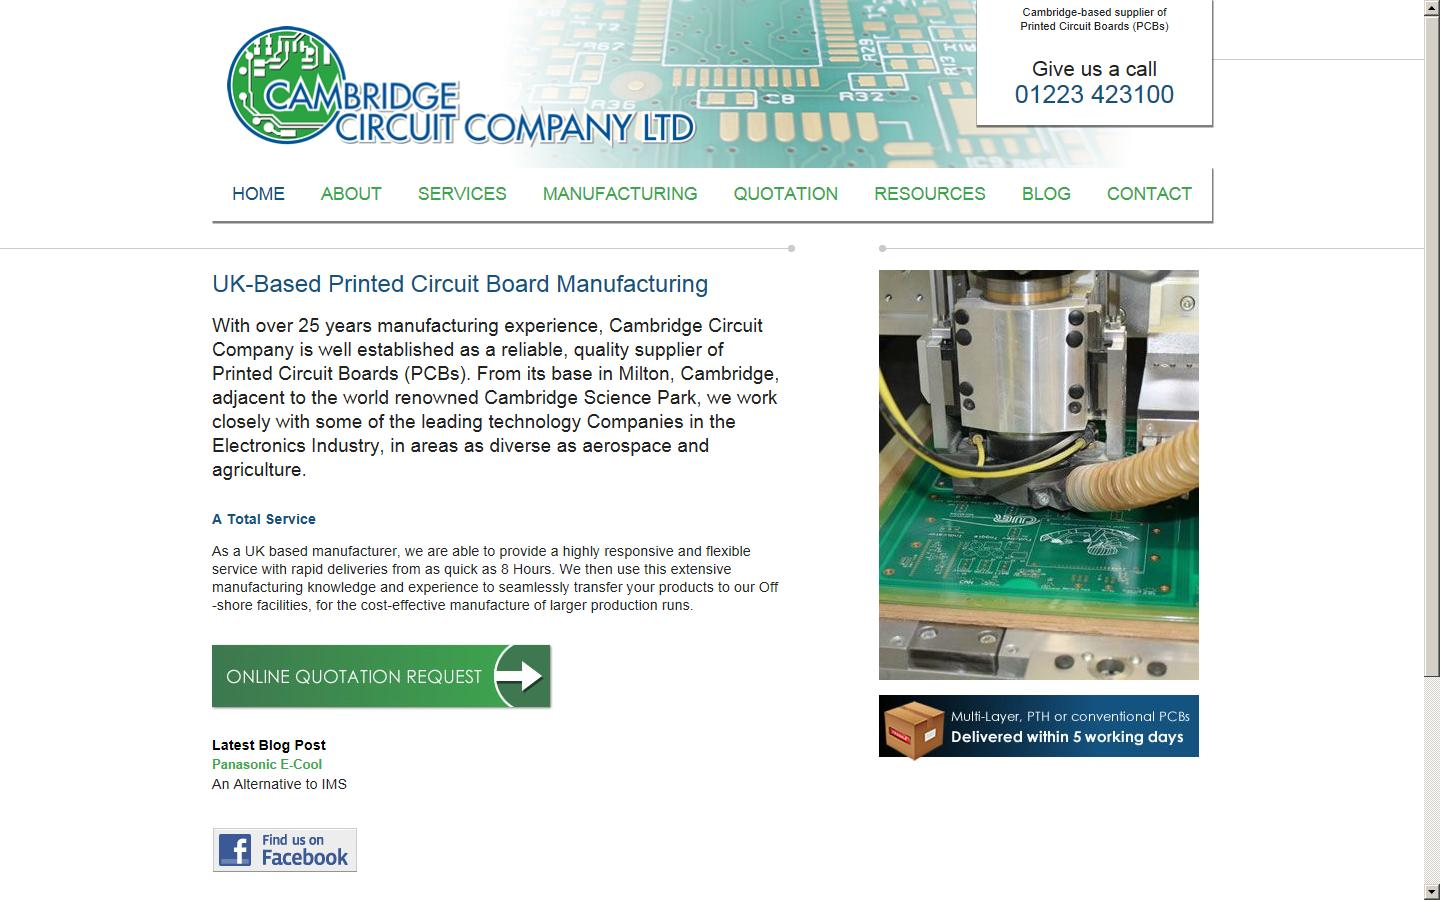 printed circuit boards pcb cambridge circuit companyunconquerable knowledge in pcb they are always passionate about helping, advising and working with customers, whatever their requirements may be